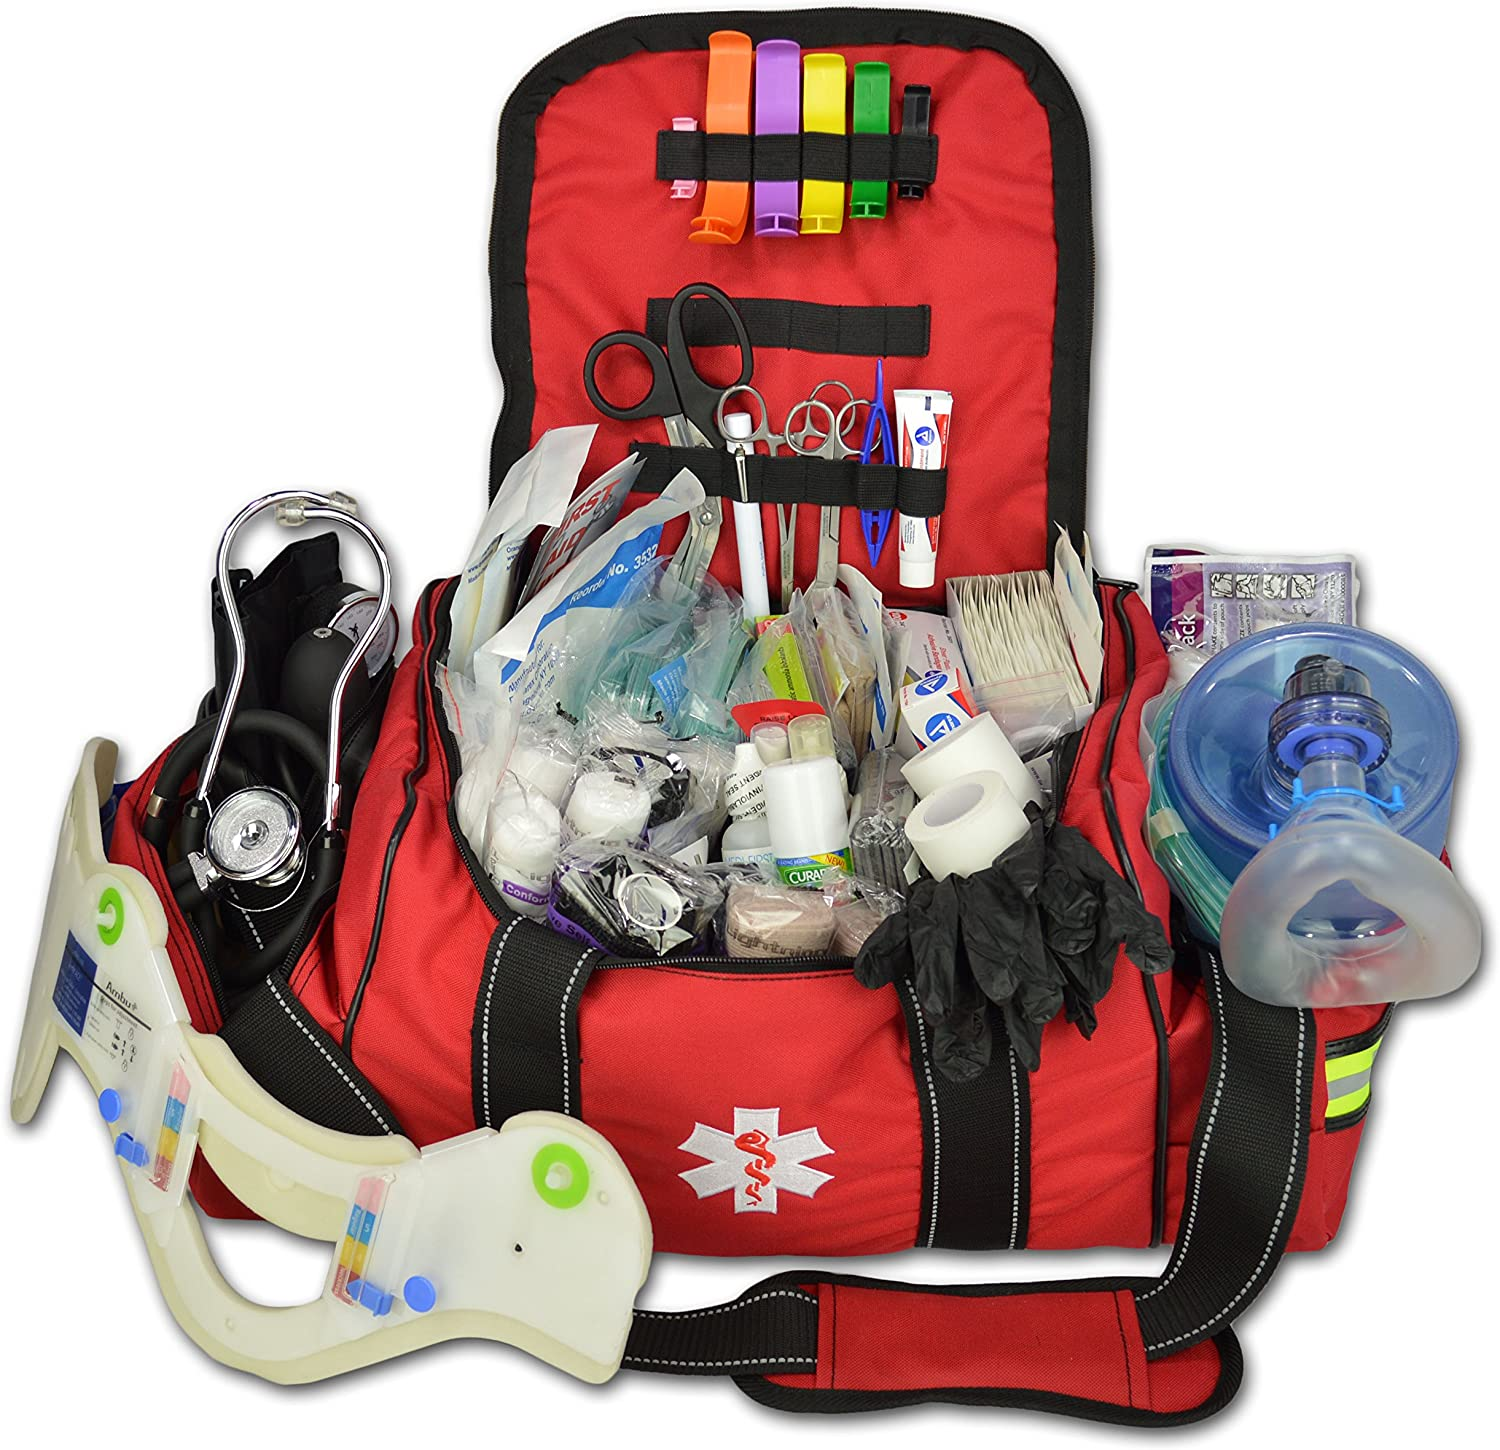 Lightning Max 72% OFF X Deluxe Stocked Max 66% OFF Large EMT Aid K Trauma Fill Bag First